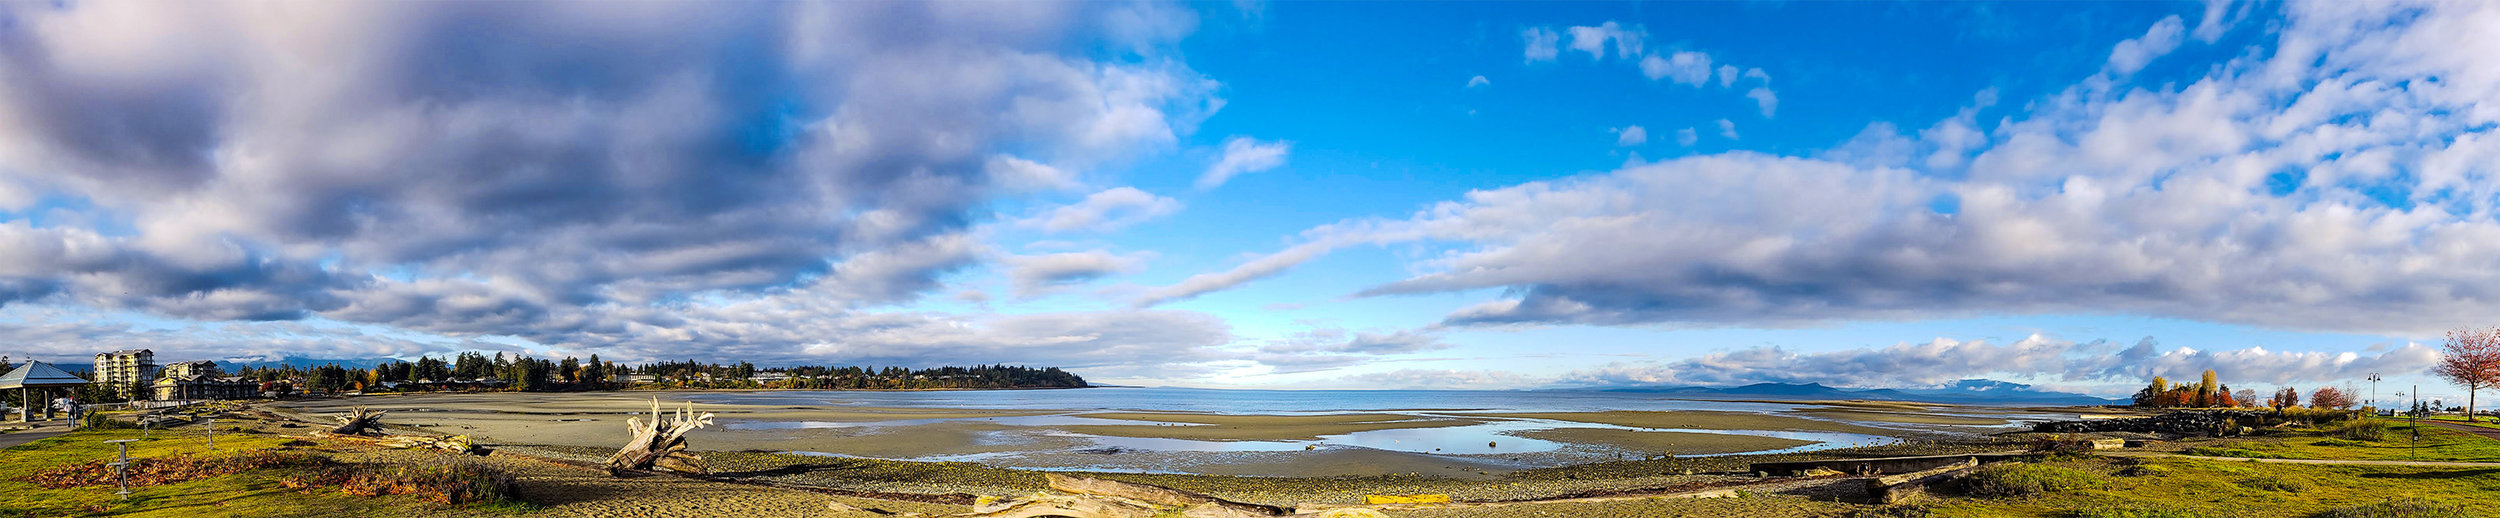 Parksville, Vancouver Island, British Columbia - Community Beach Panorama